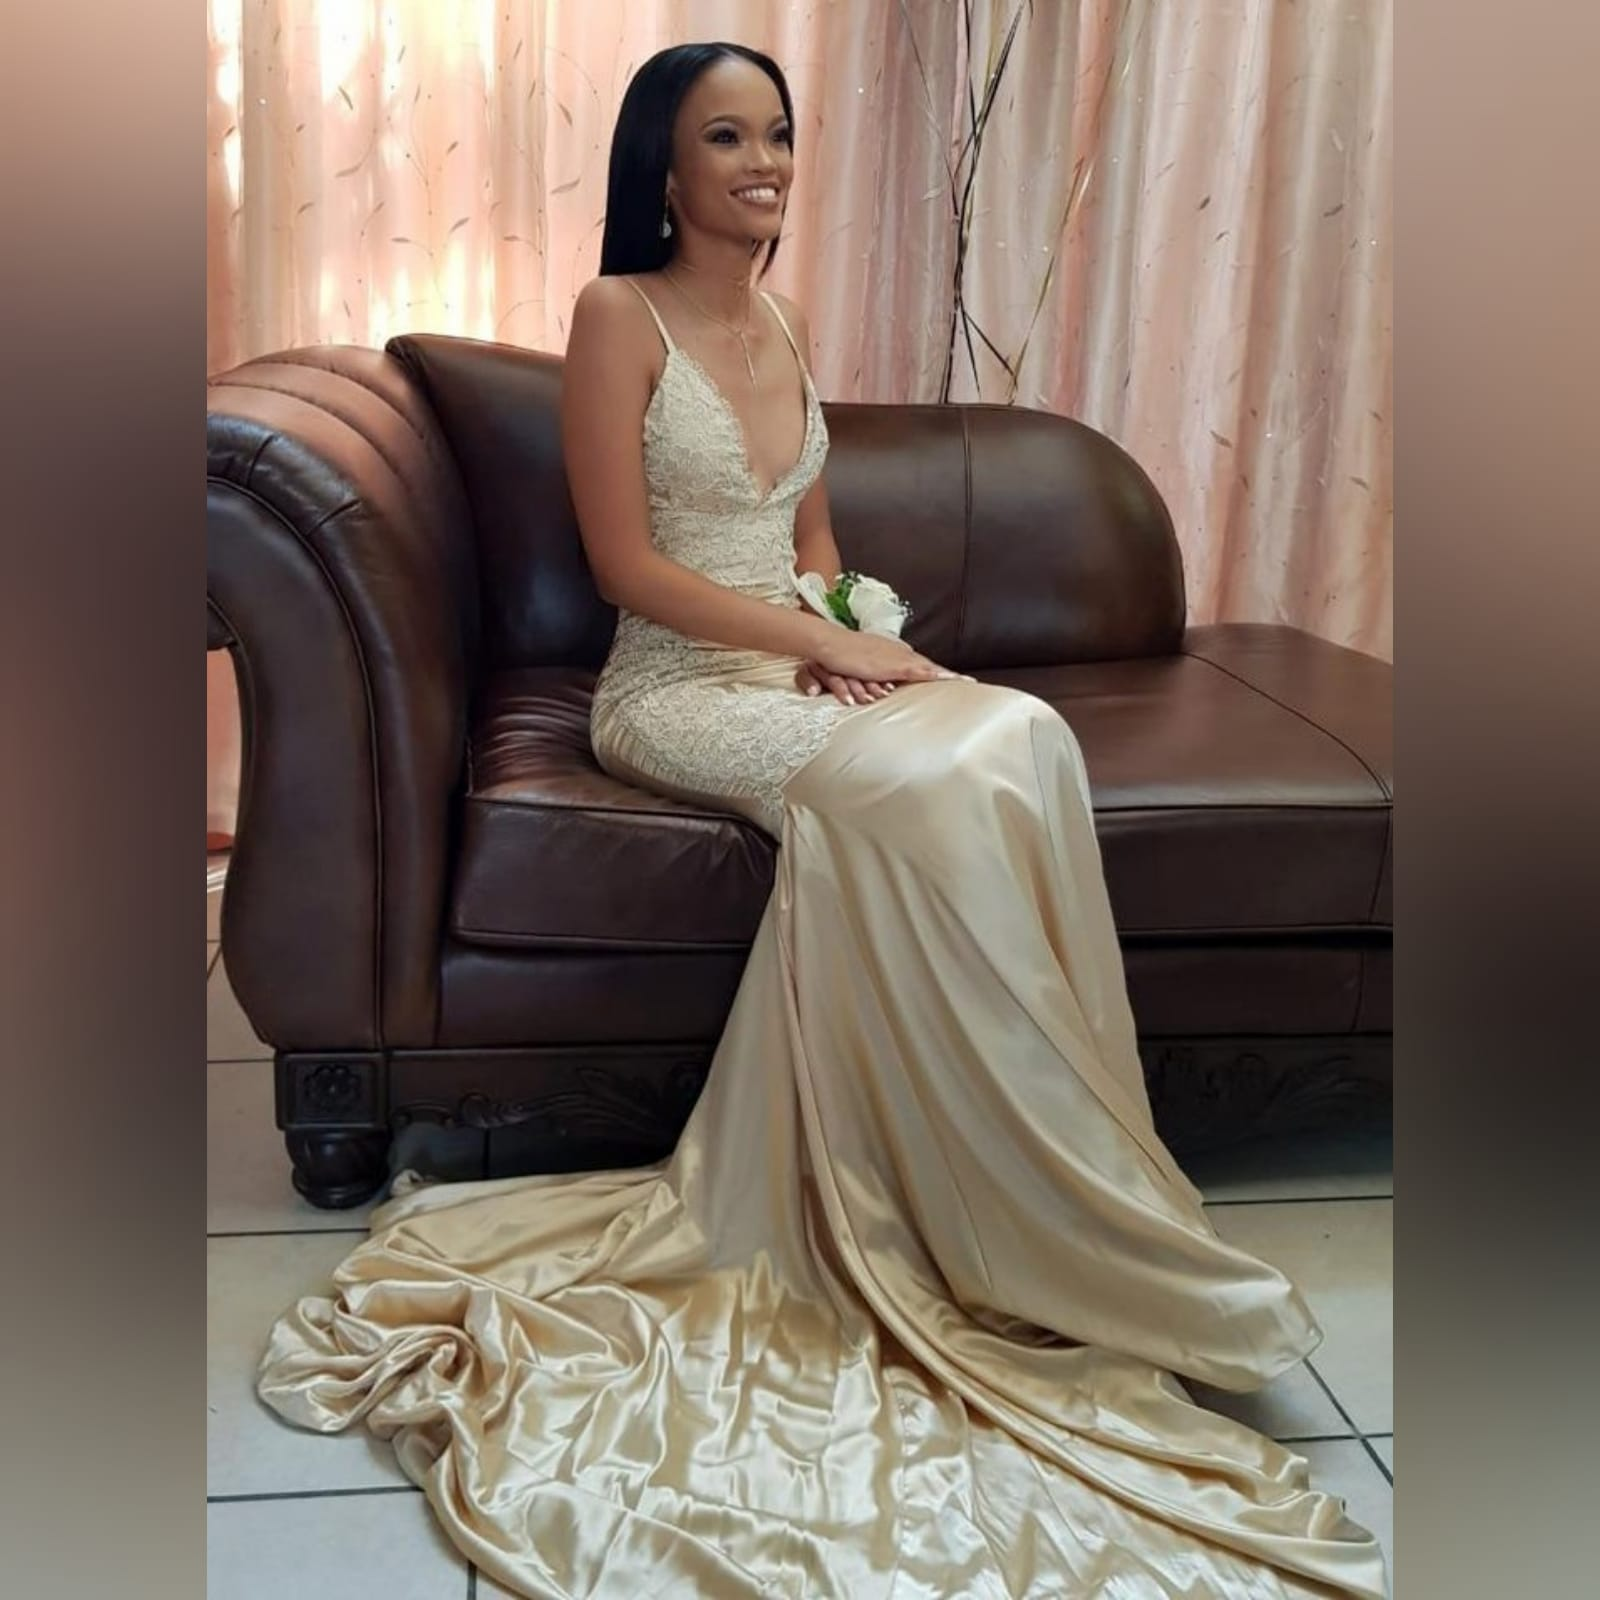 Gold satin soft mermaid matric farewell dress 1 gold satin soft mermaid matric farewell dress with a v neckline, a naked back and long train. Bodice hips and back detailed with lace.